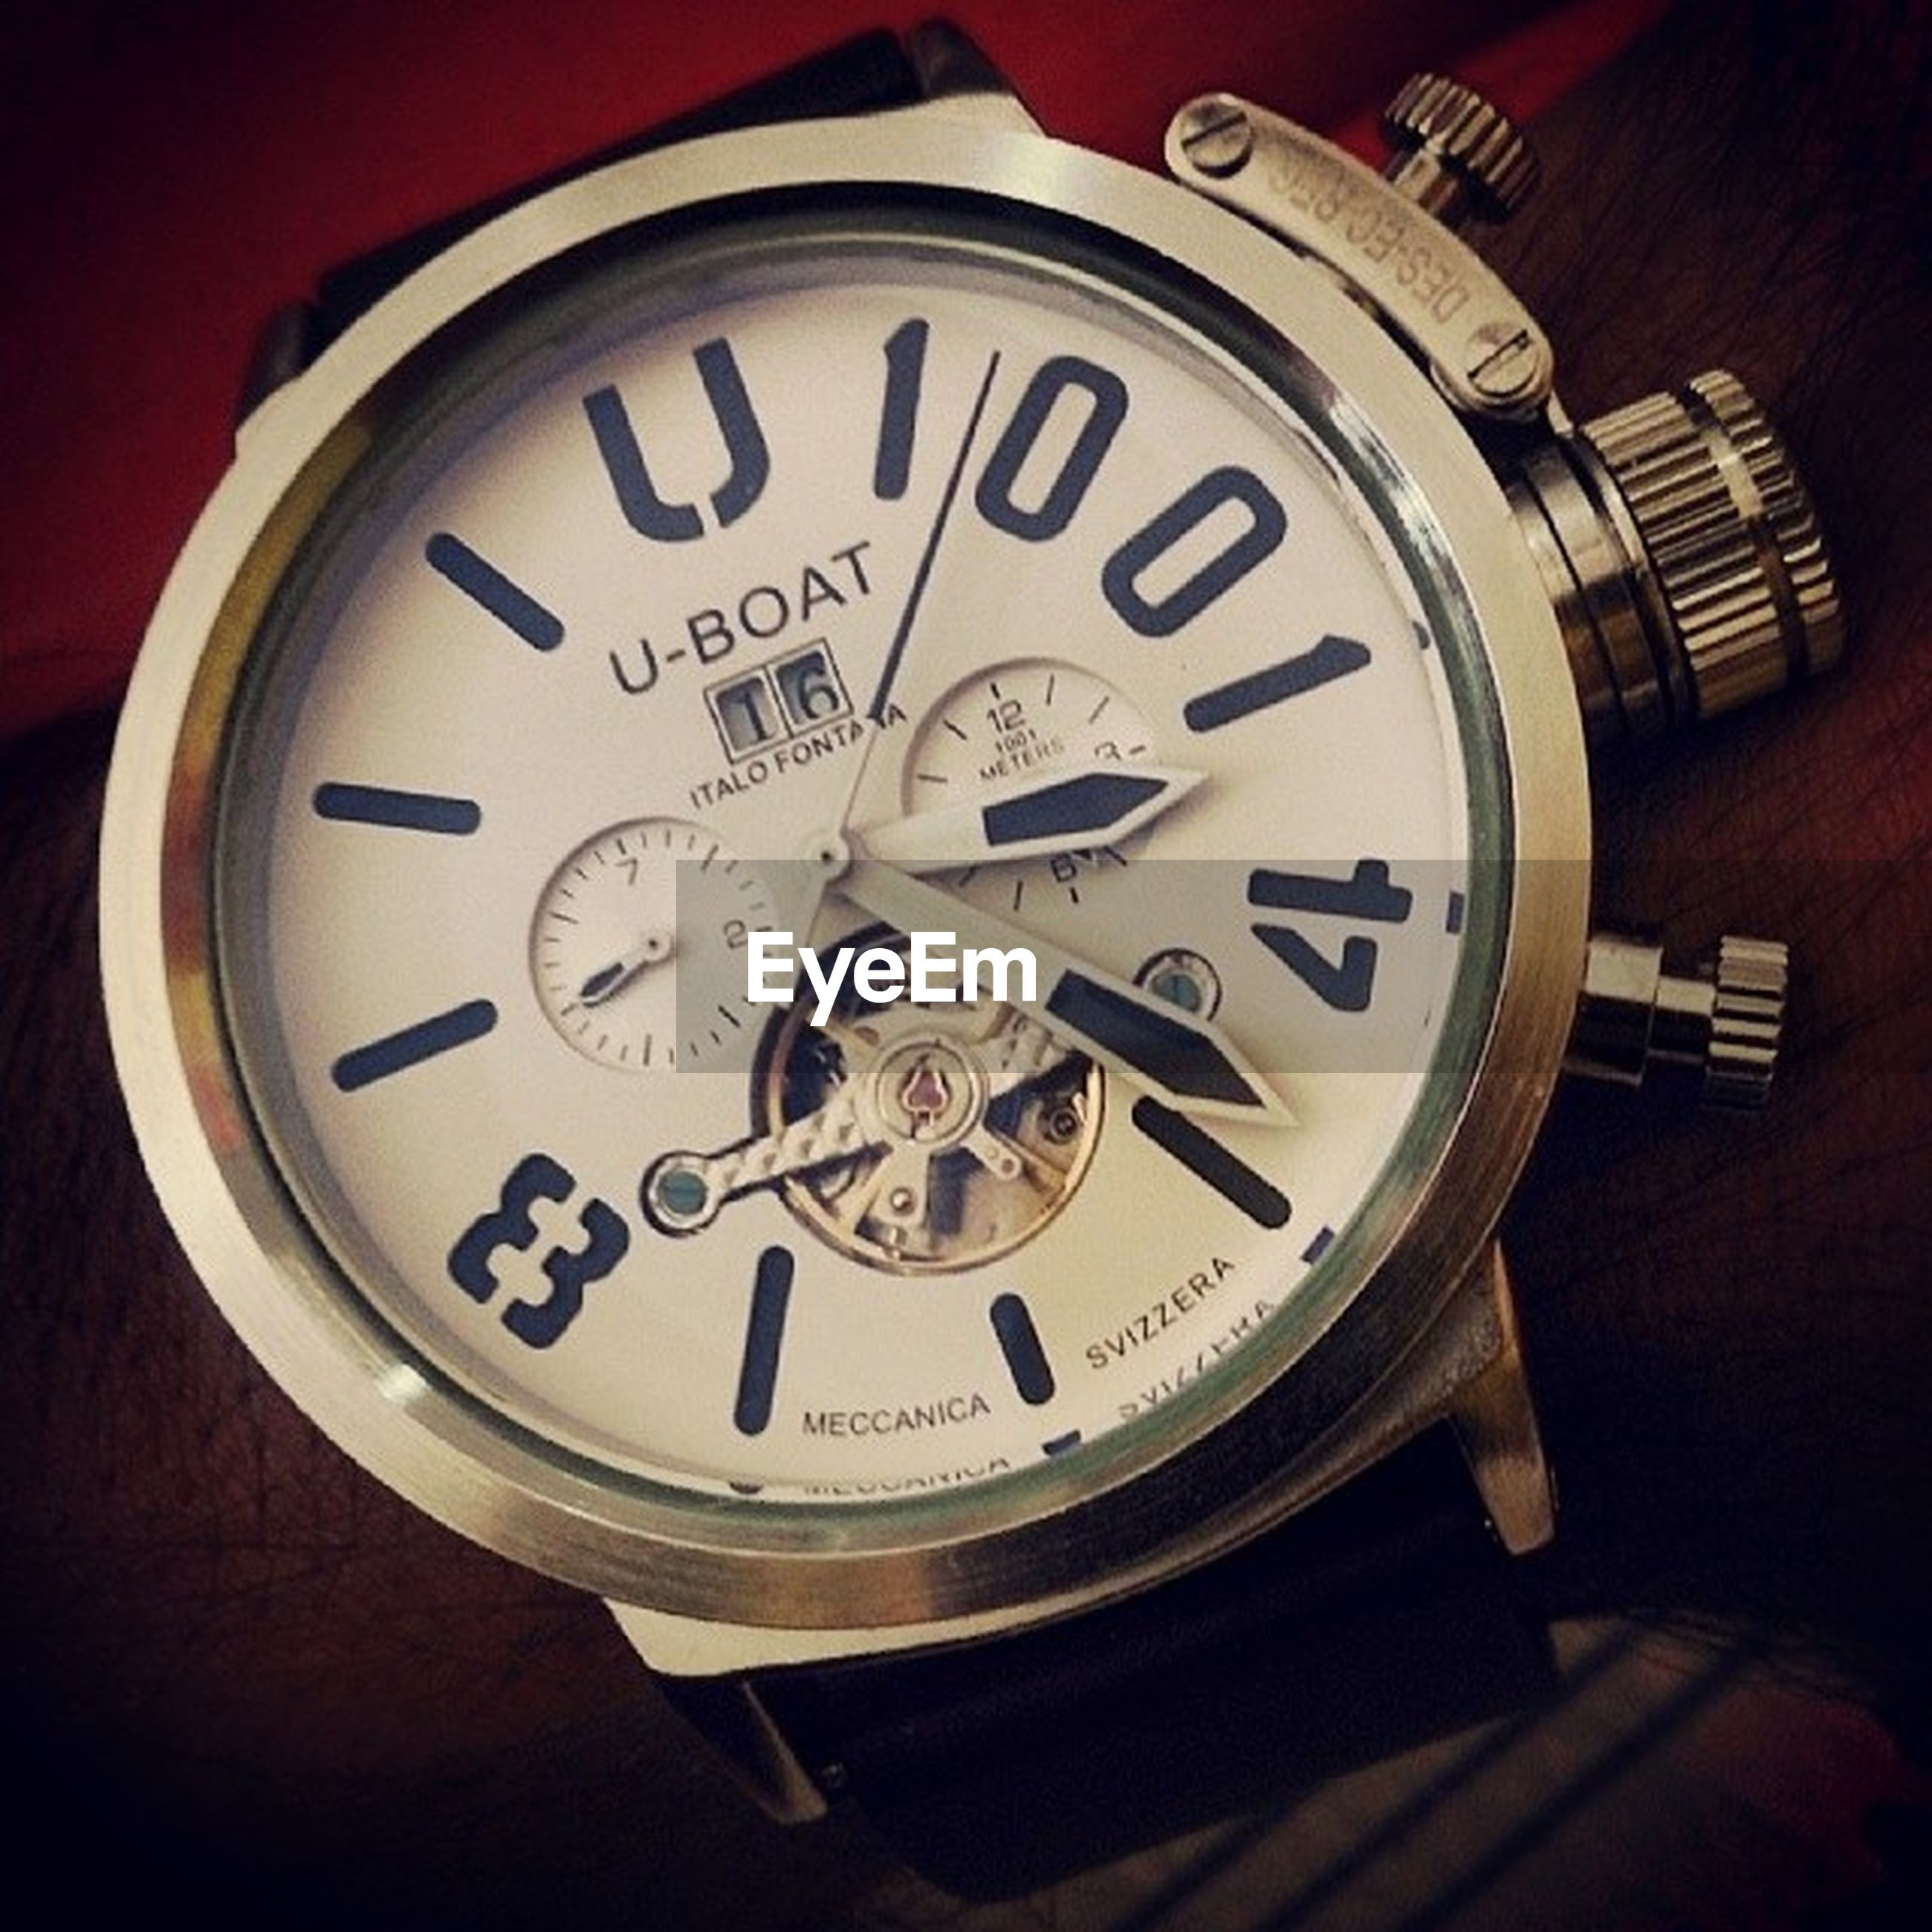 text, indoors, communication, clock, time, number, western script, close-up, accuracy, technology, circle, old-fashioned, clock face, retro styled, instrument of measurement, minute hand, wall clock, instrument of time, no people, roman numeral